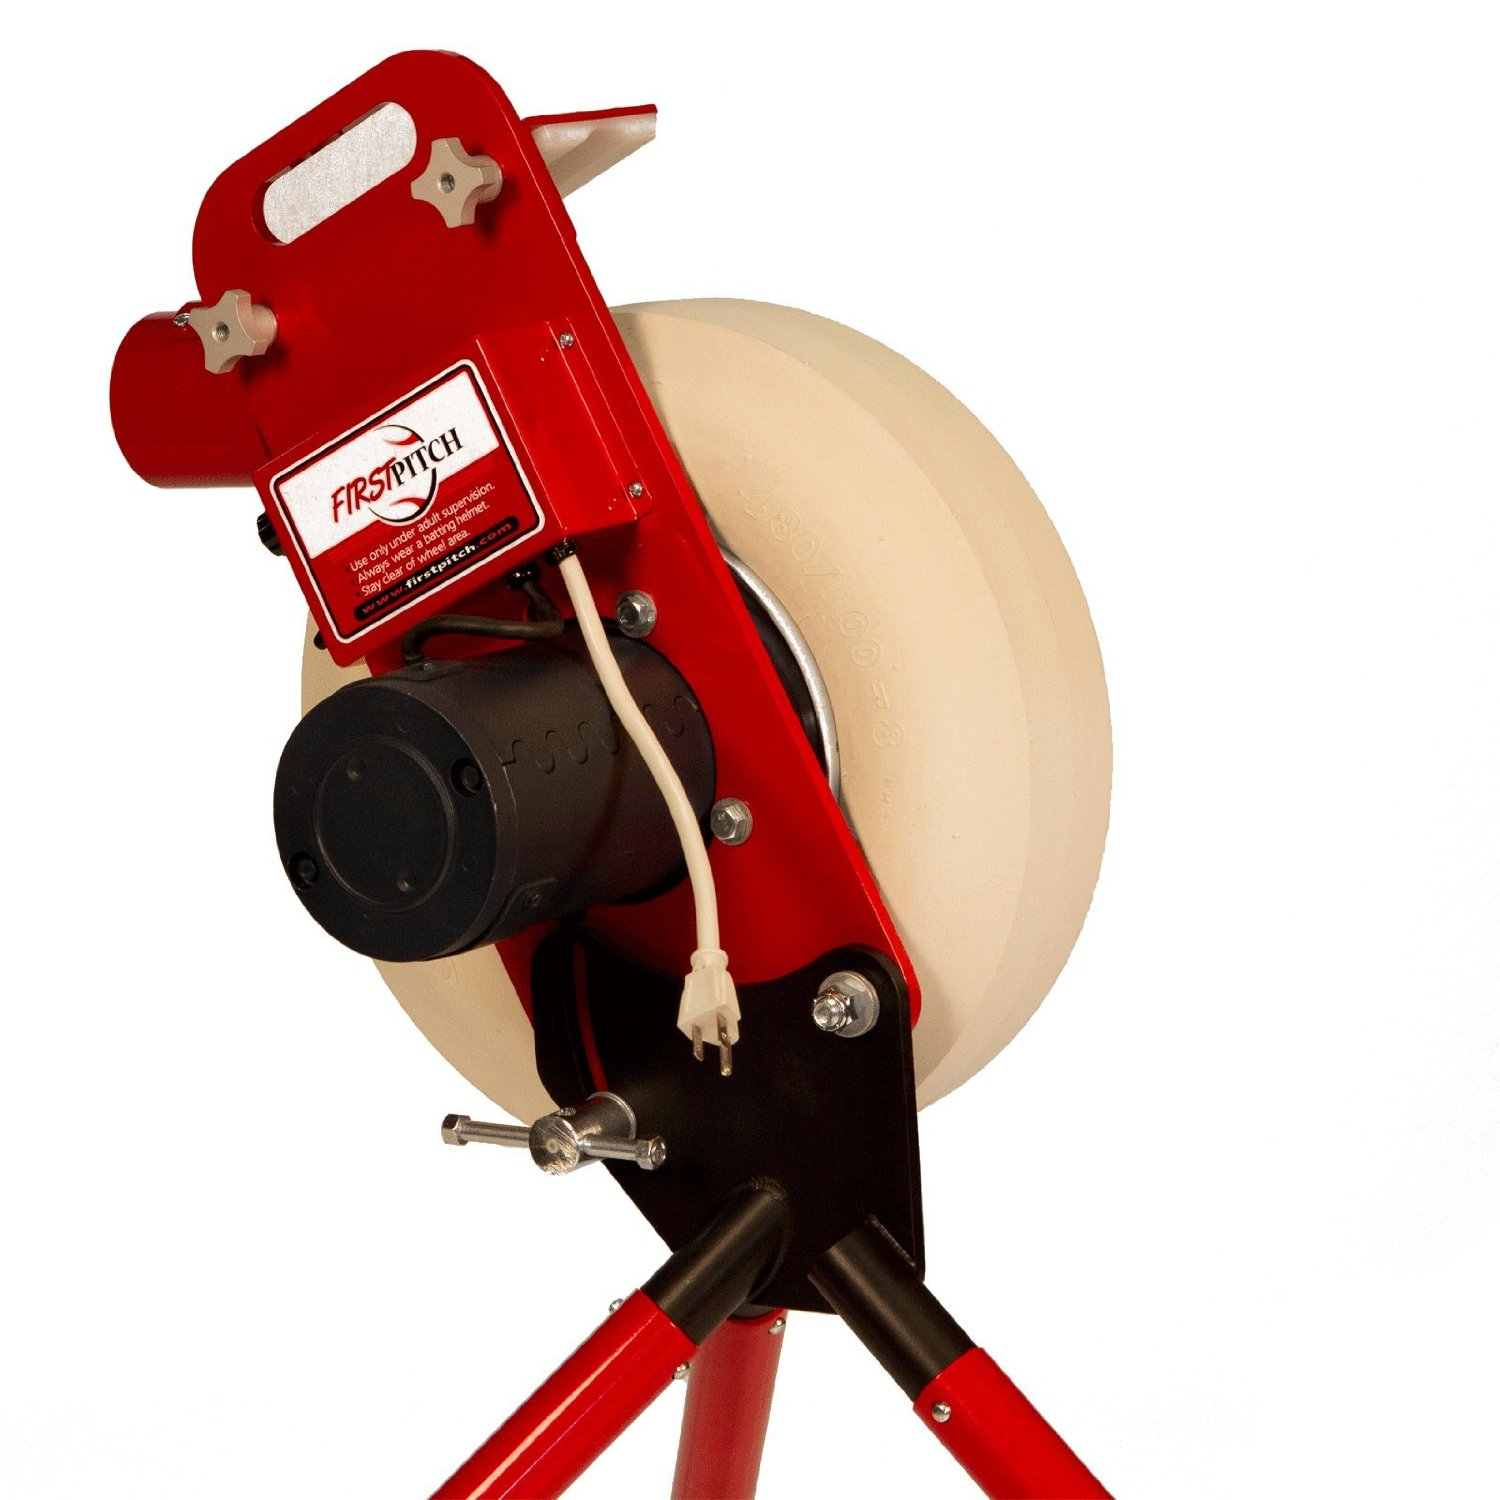 where can i buy a pitching machine